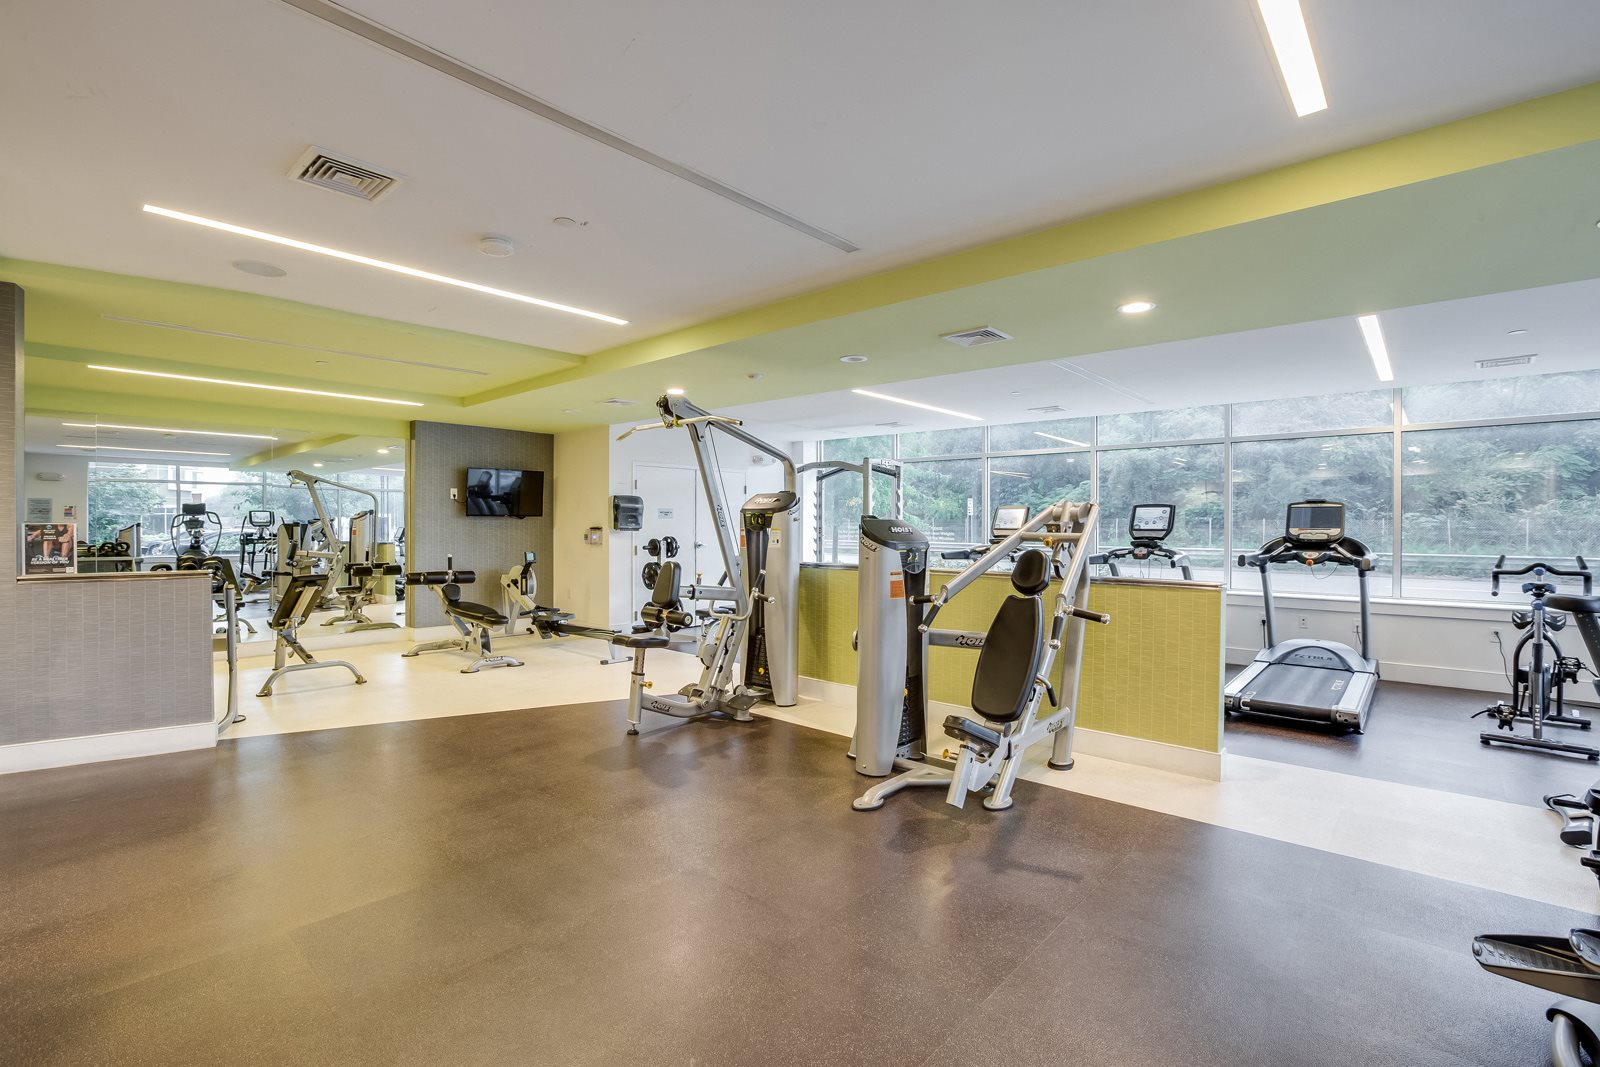 24-Hour, State-of-the-Art Fitness Center at Vox on Two, Cambridge, MA